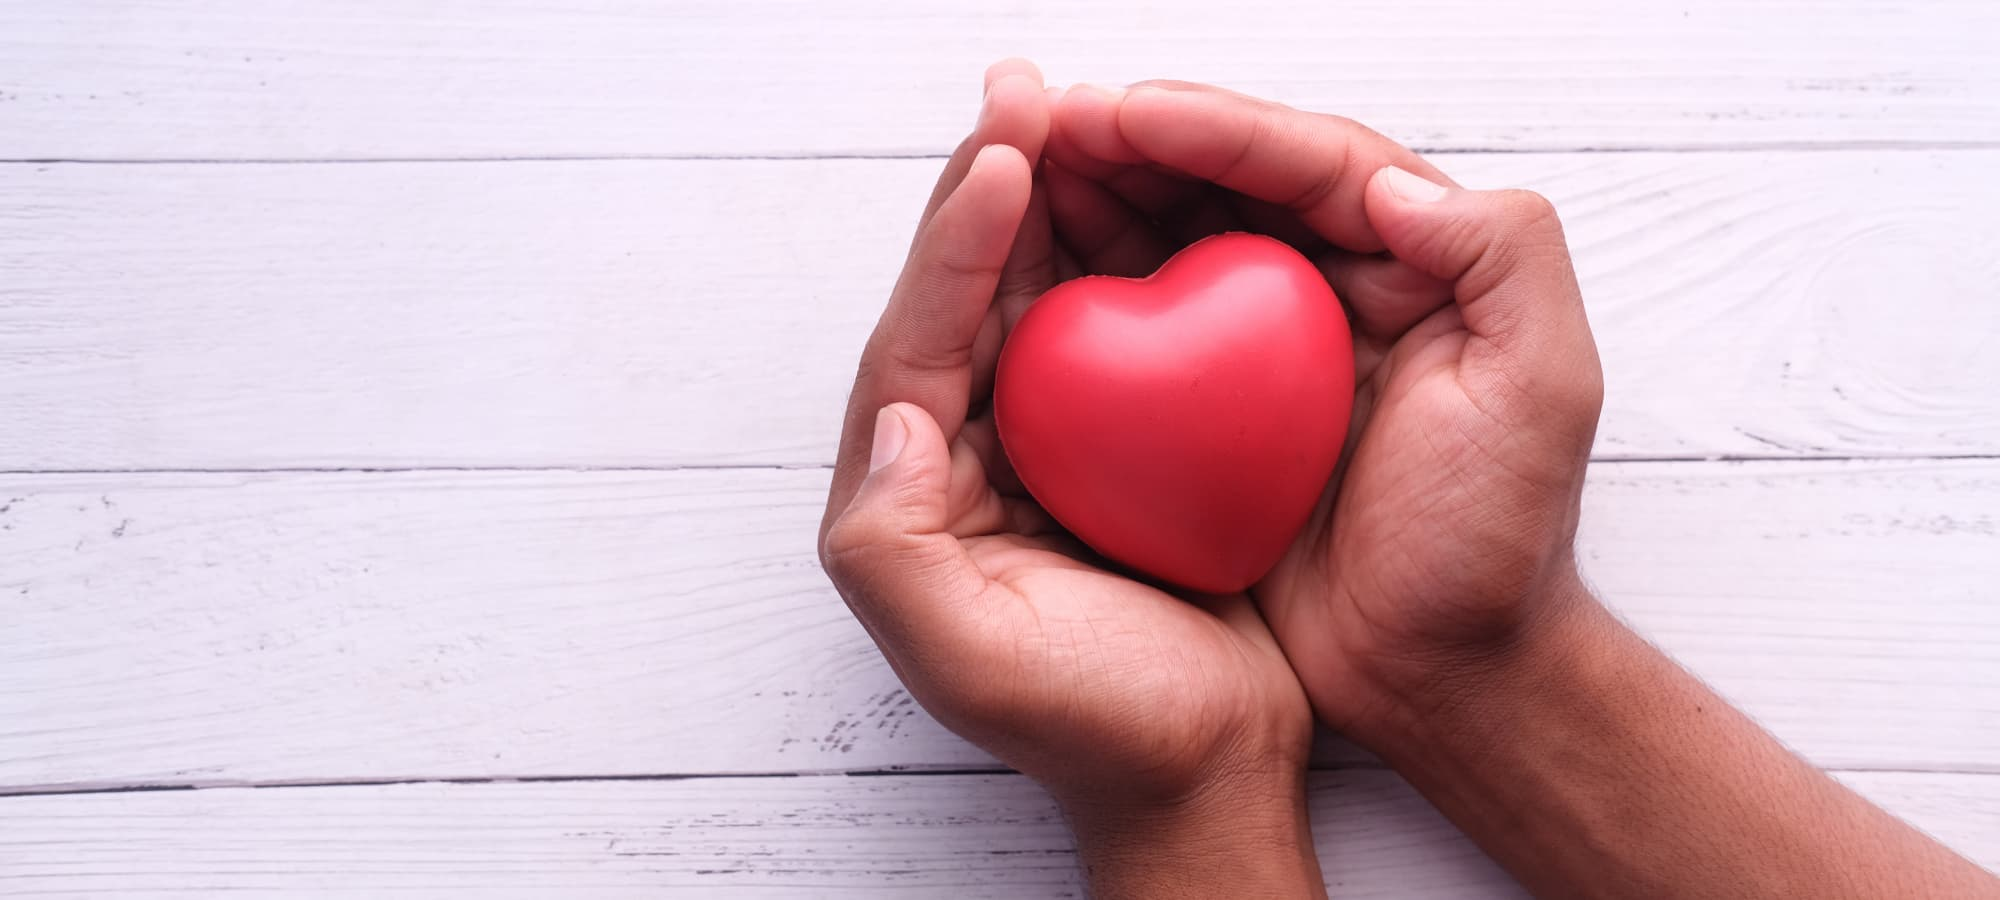 cupped hands holding a model of a heart